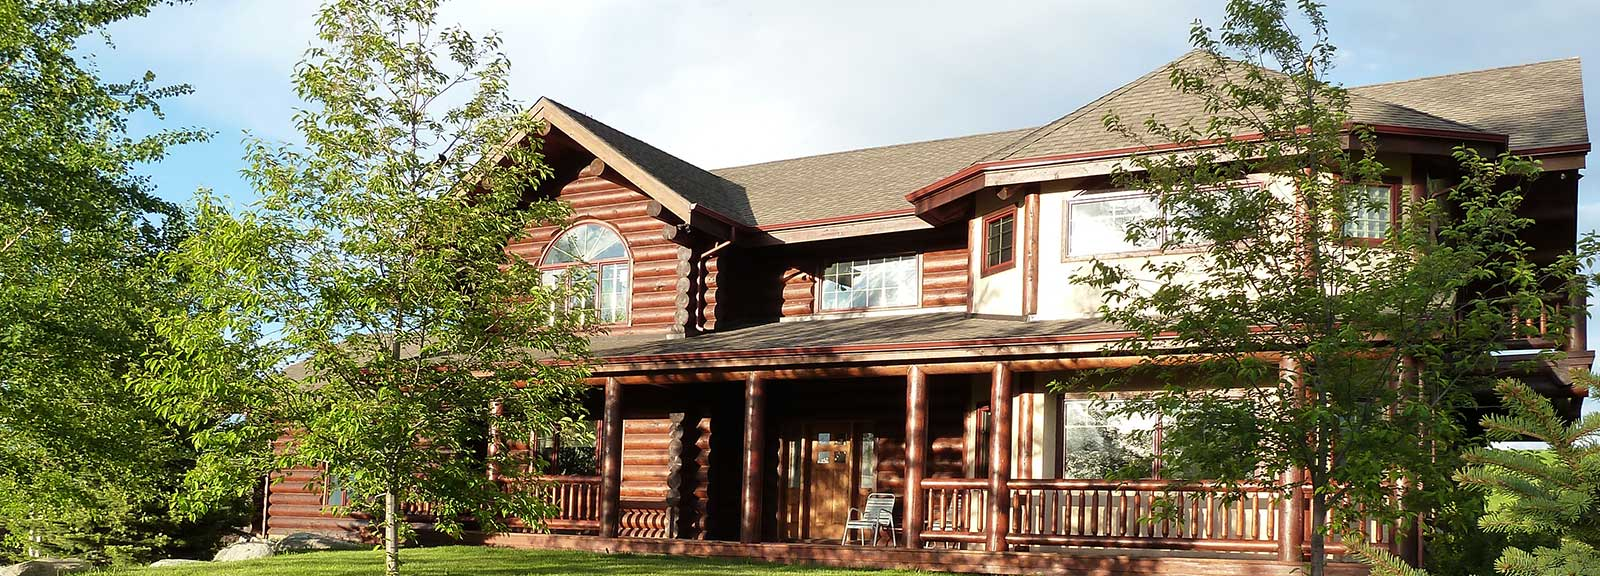 Montana Log Home for sale